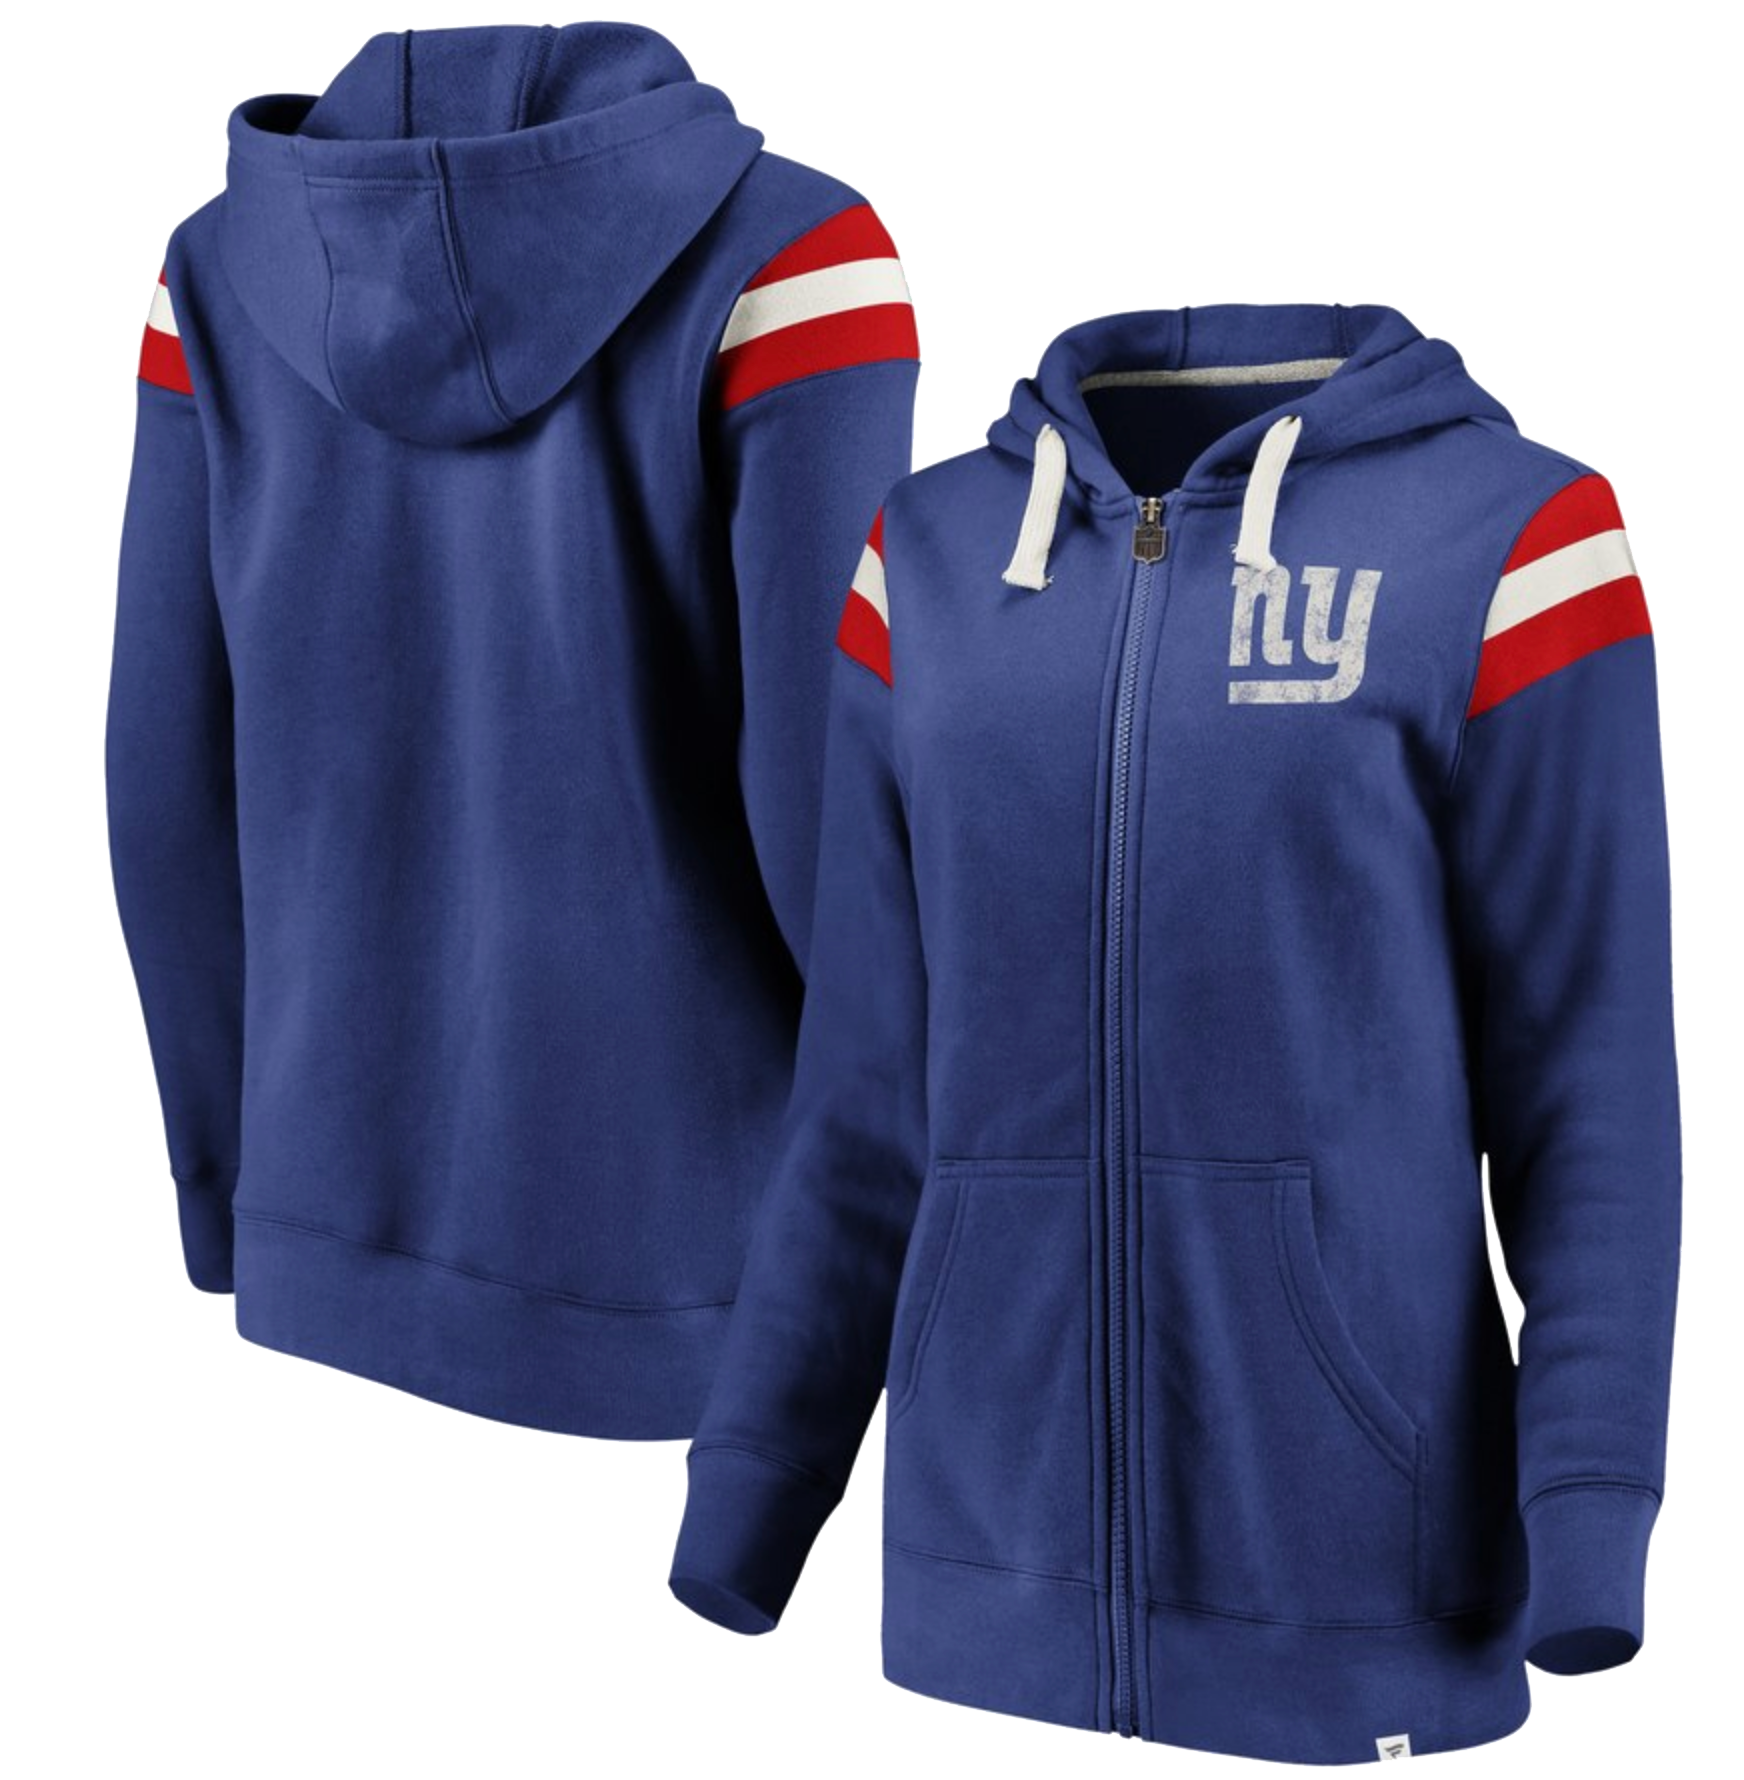 ceb00eea Women's New York Giants NFL Pro Line by Fanatics Branded Royal/Red ...